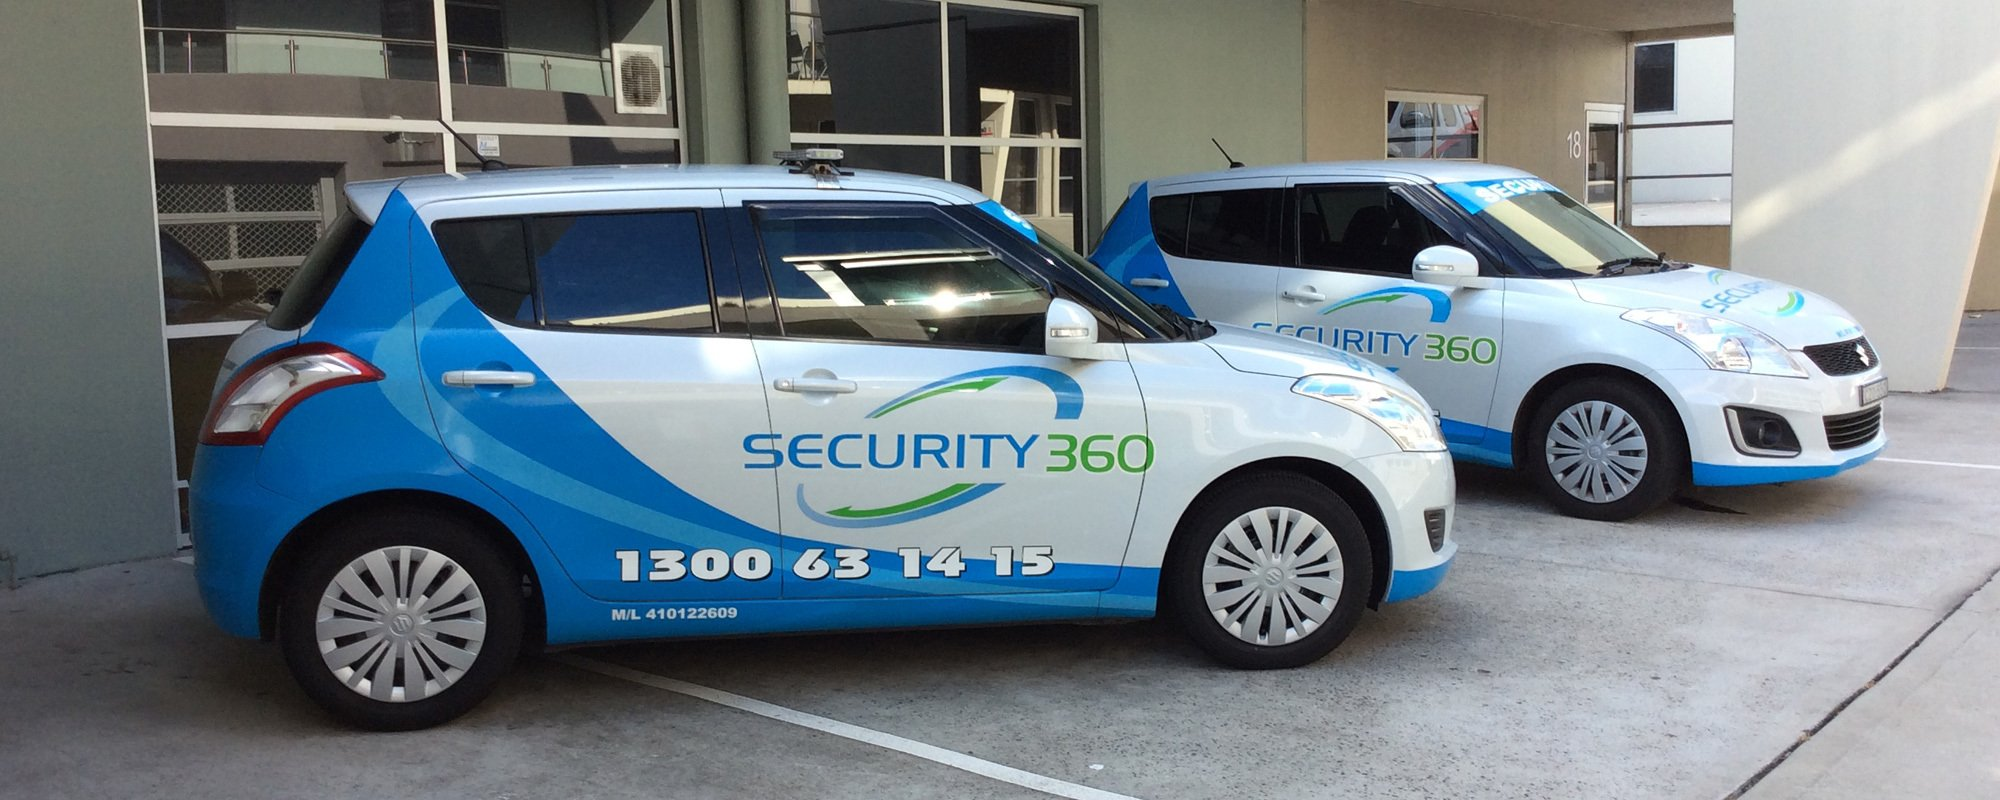 Security 360 advertisement cars